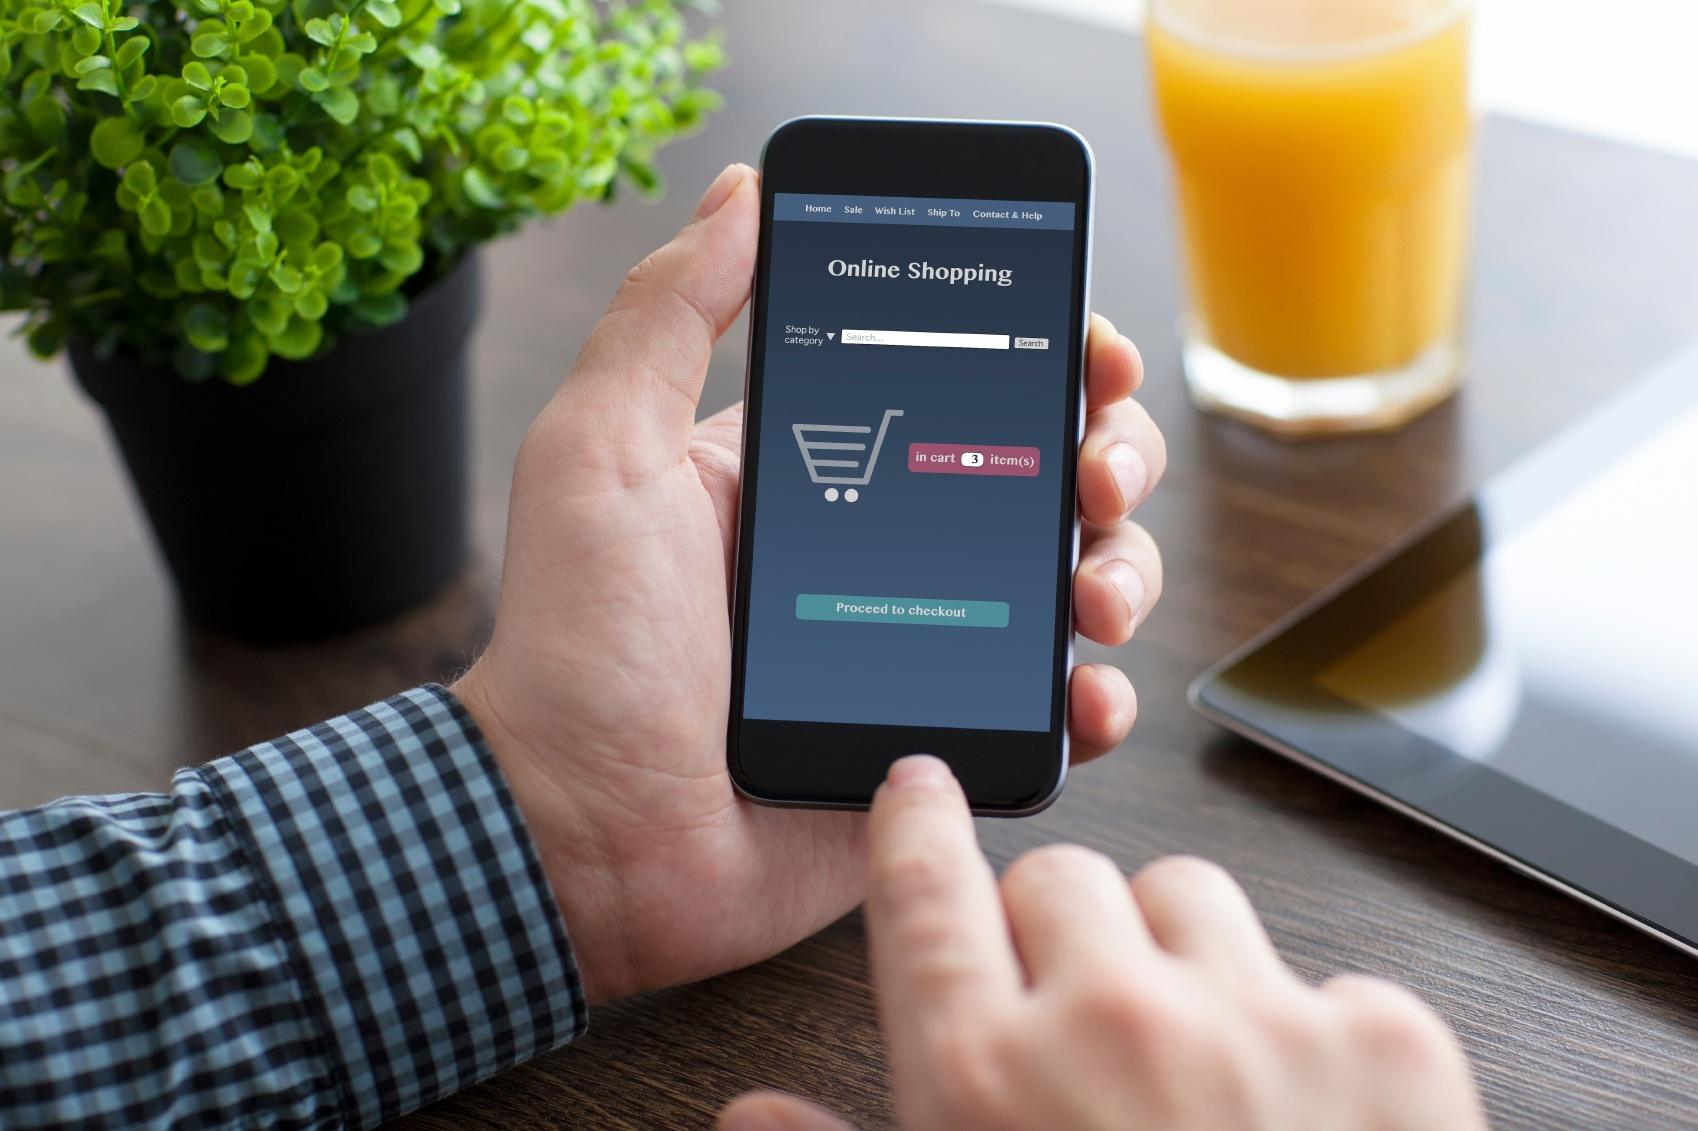 top 3 ecommerce mobile marketing trends to look out for